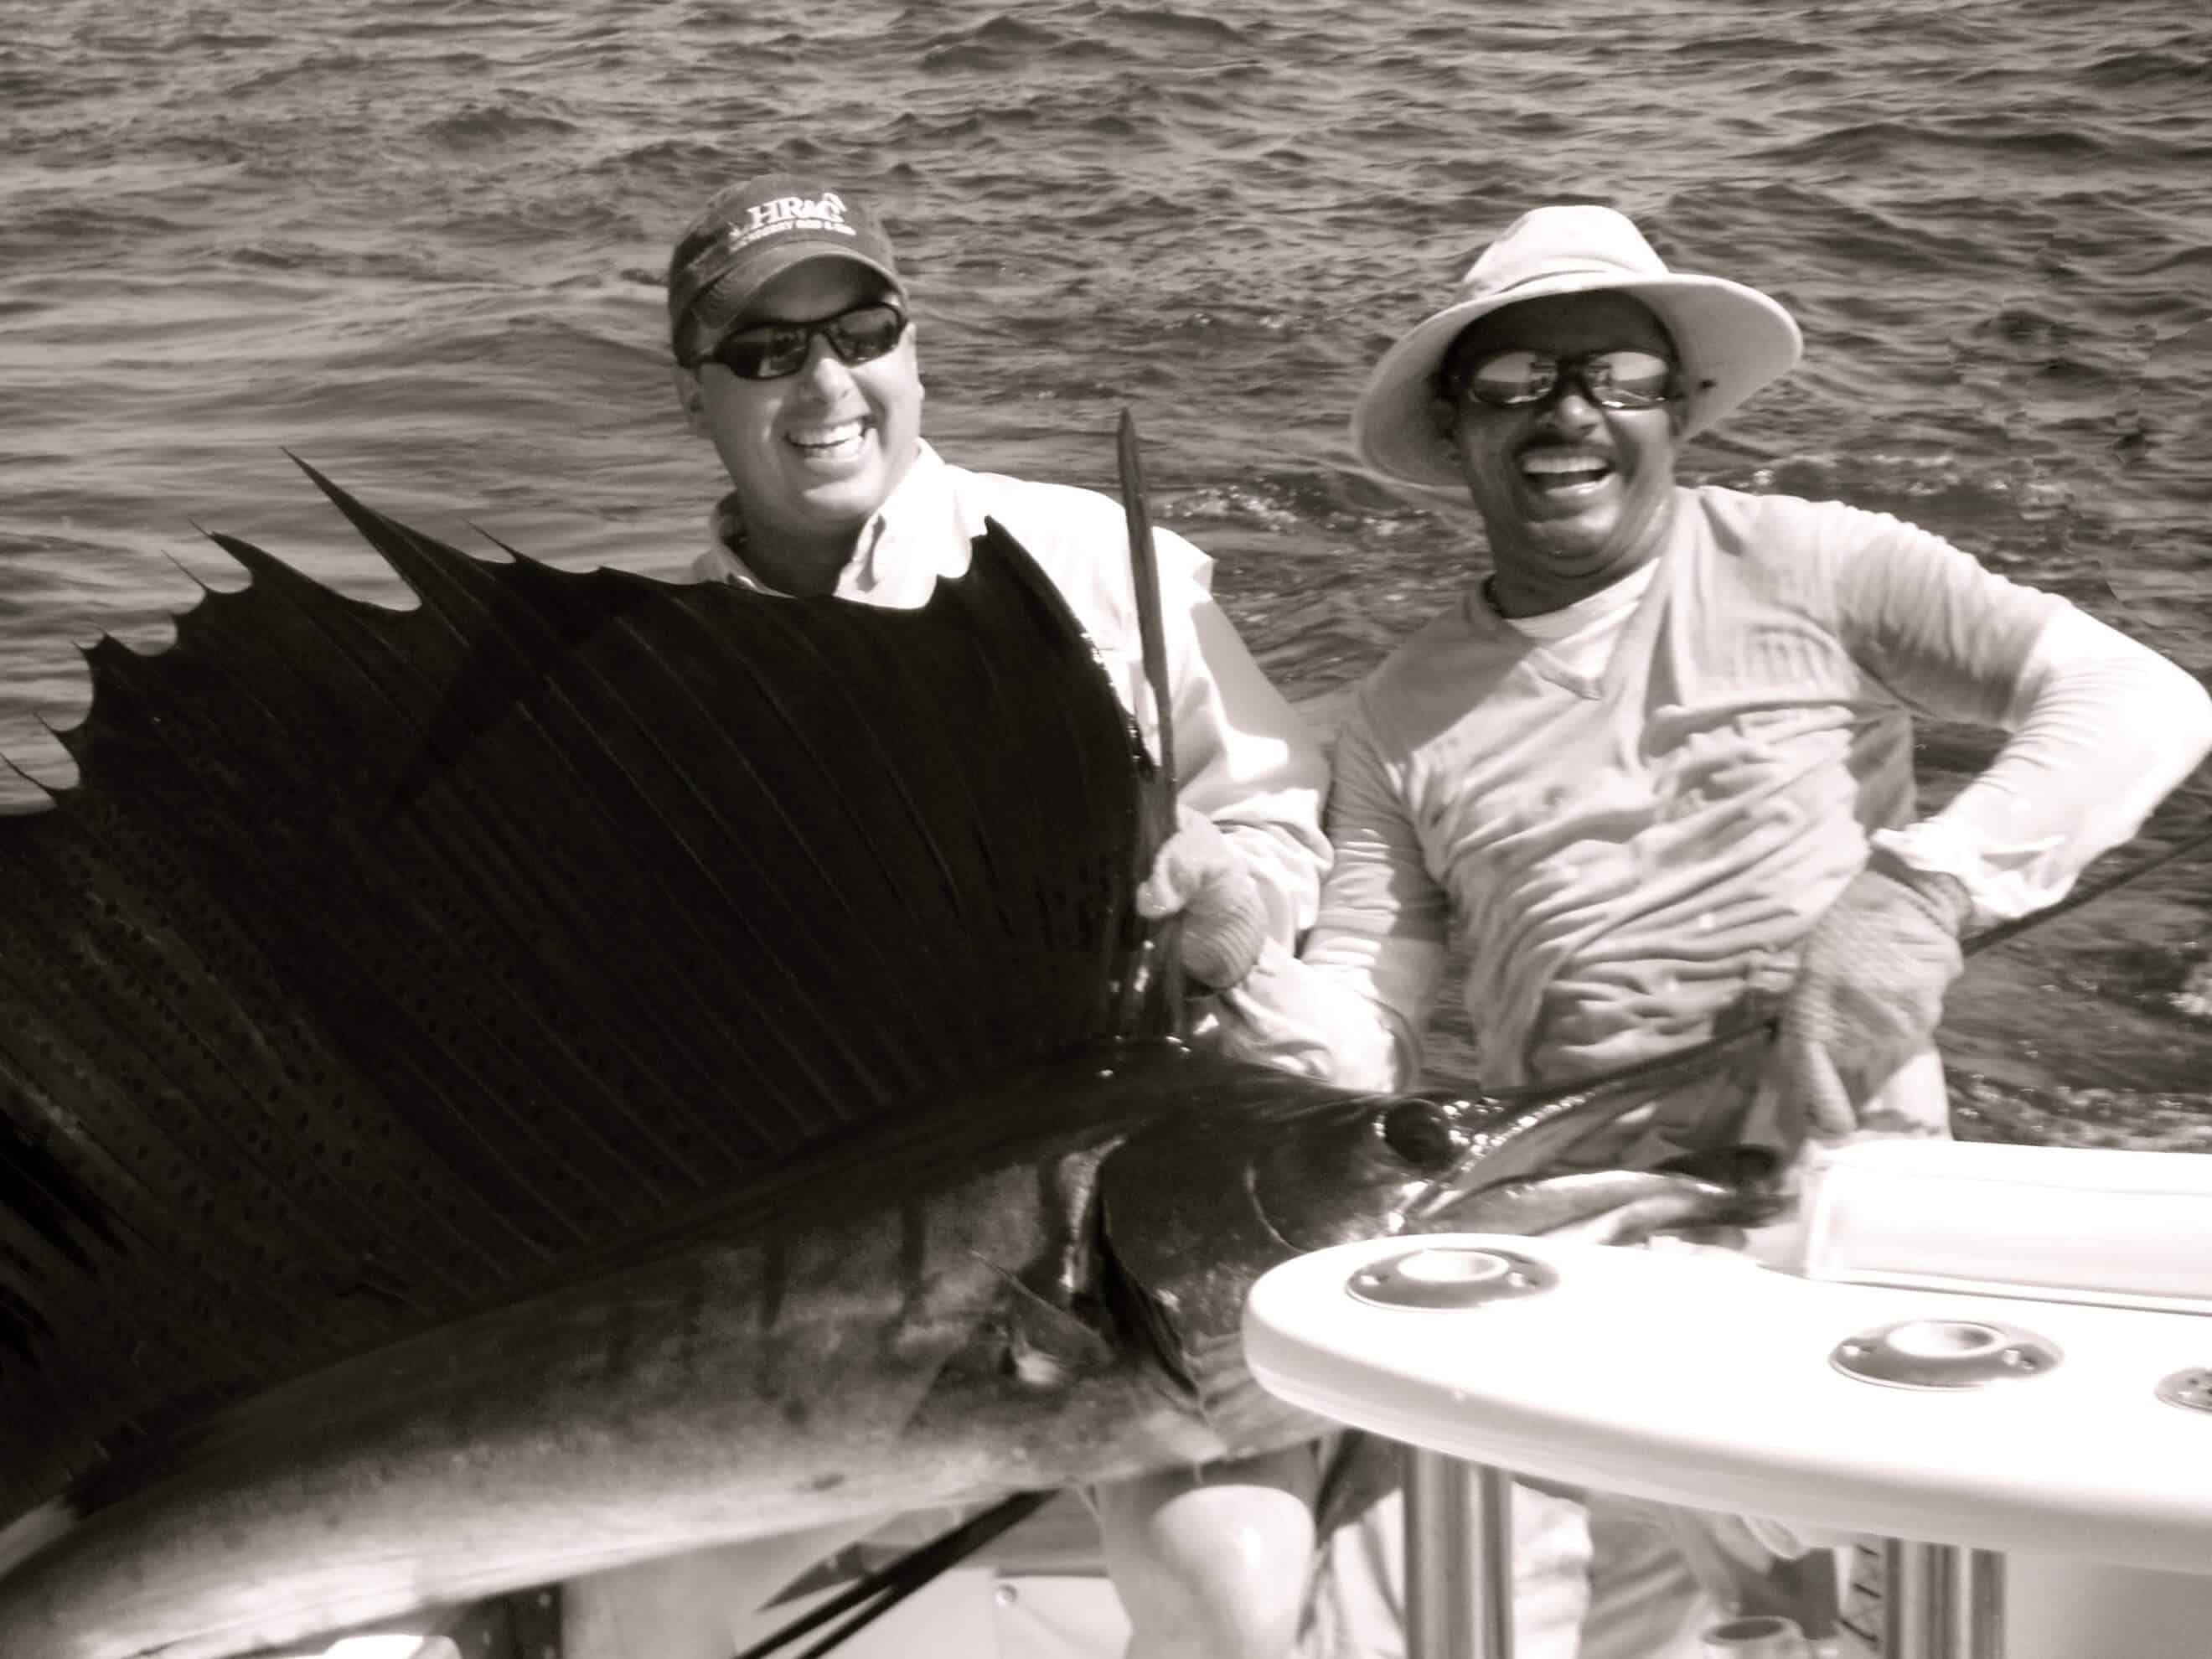 Fishermen with huge sailfish on boat catch and release